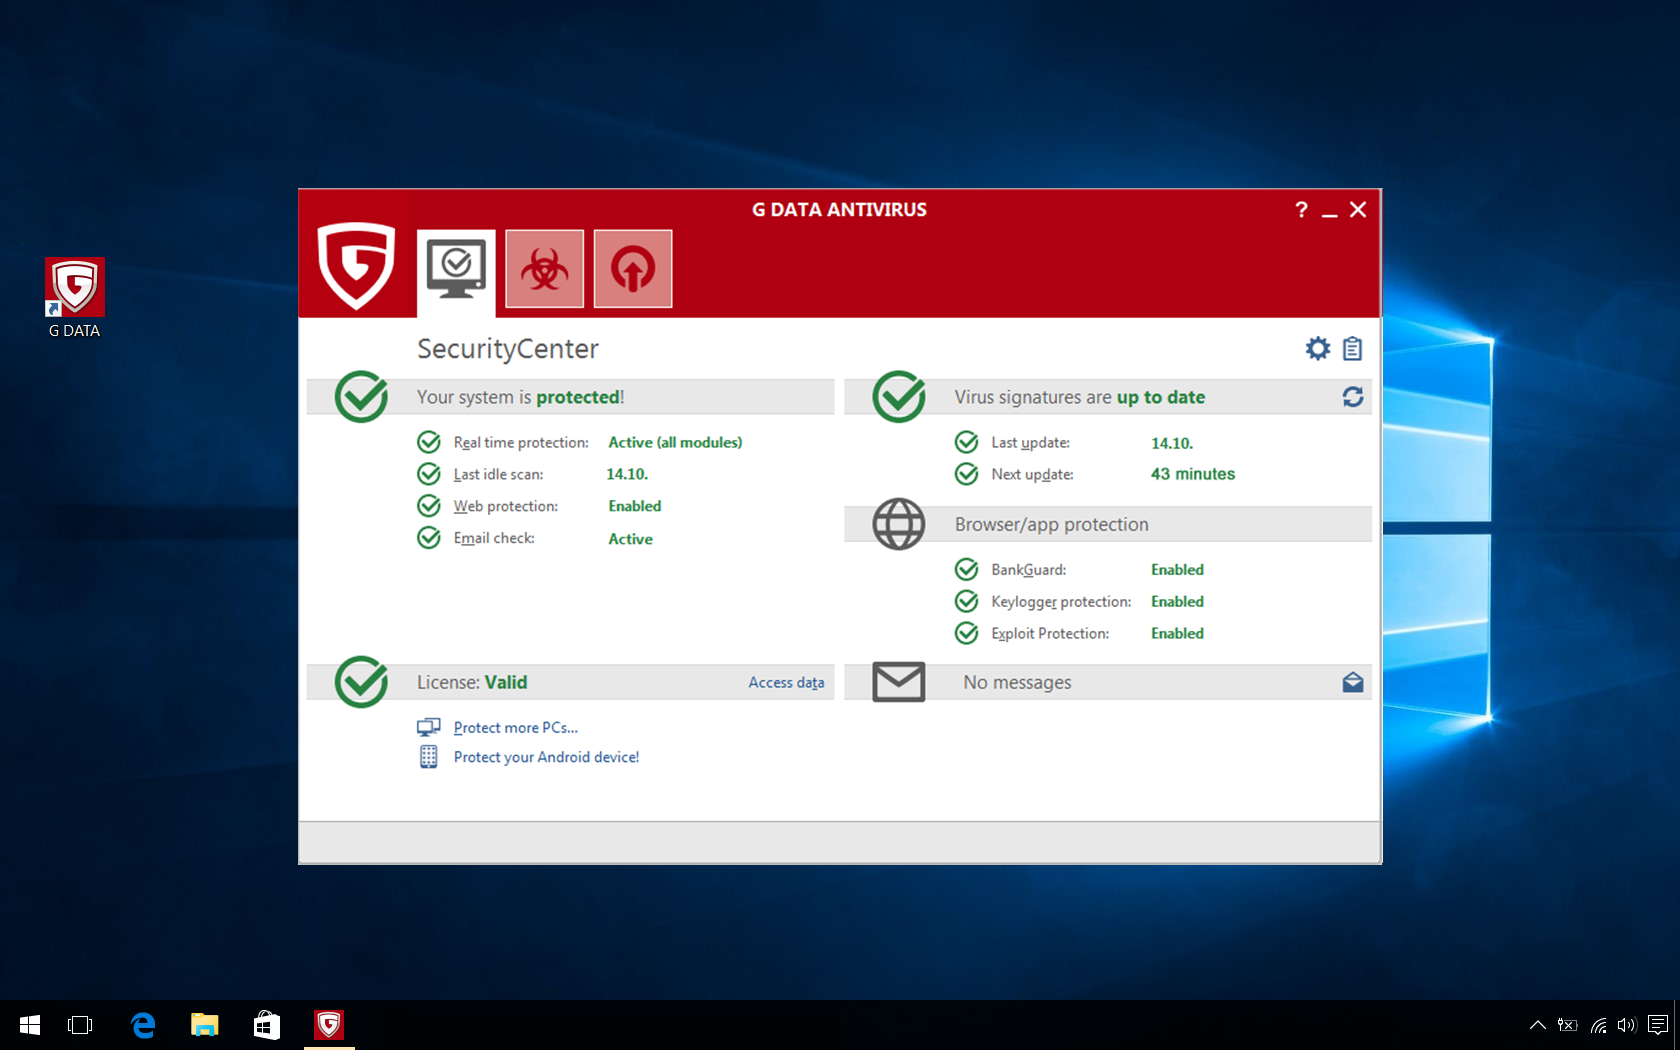 G_DATA_Antivirus_Screenshot_SecurityCenter_EN